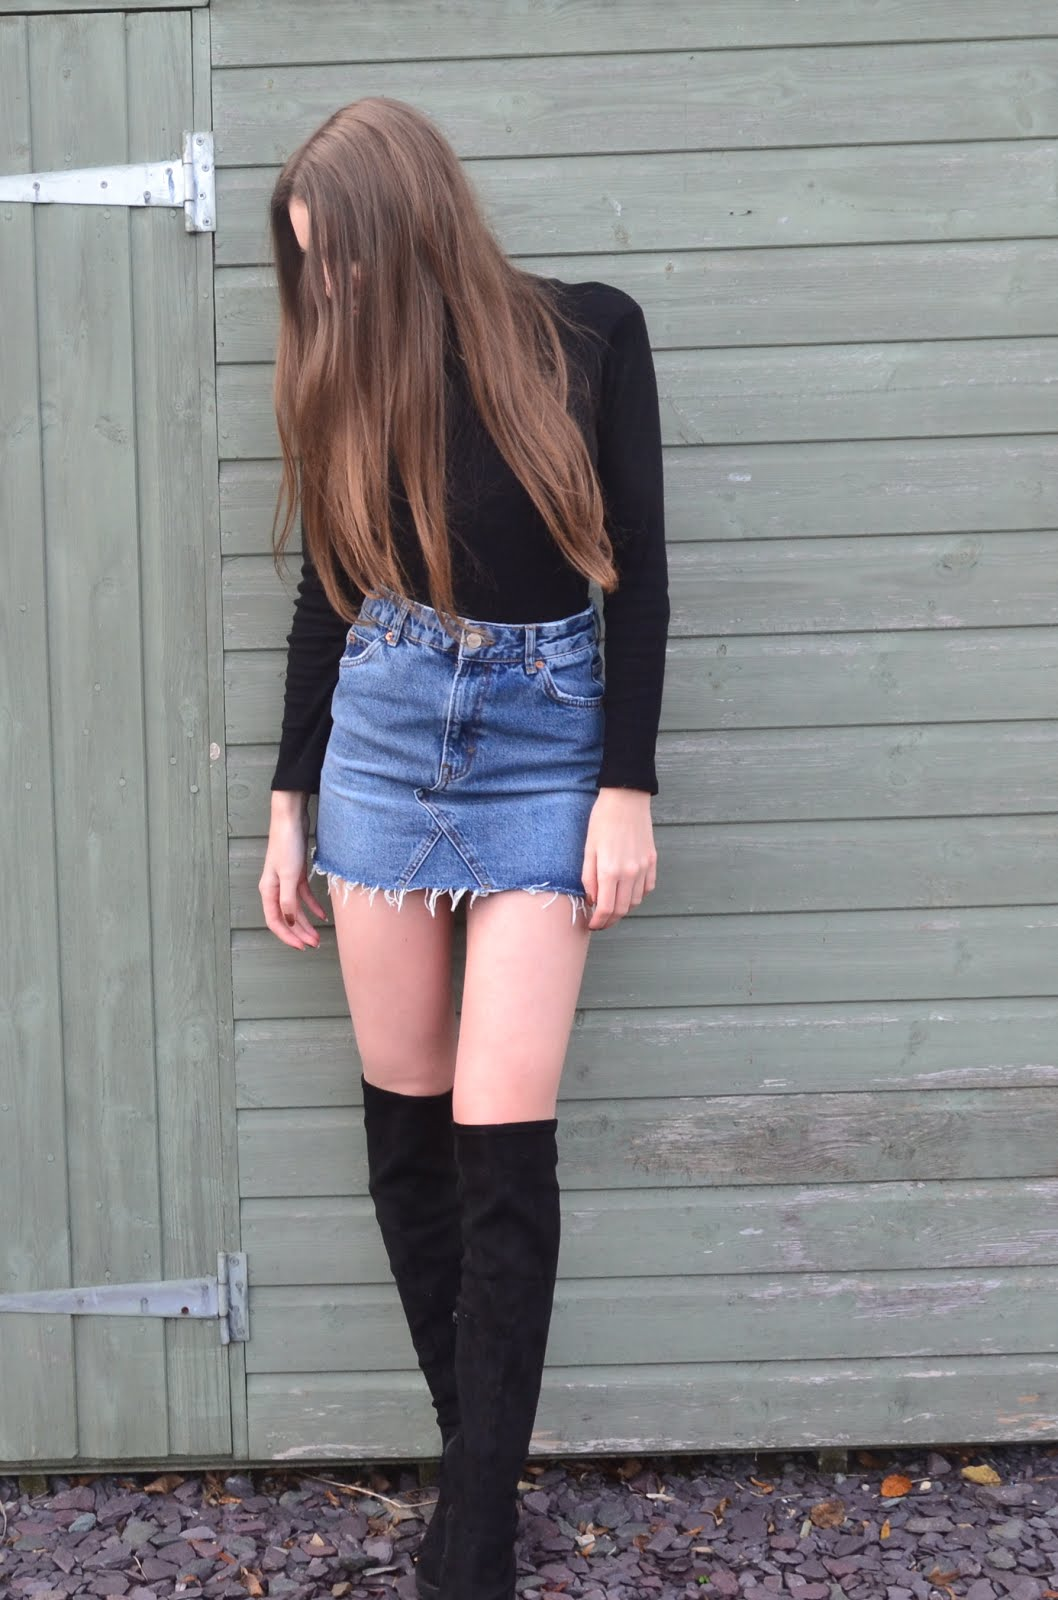 denim skirts and knee highs ella renee